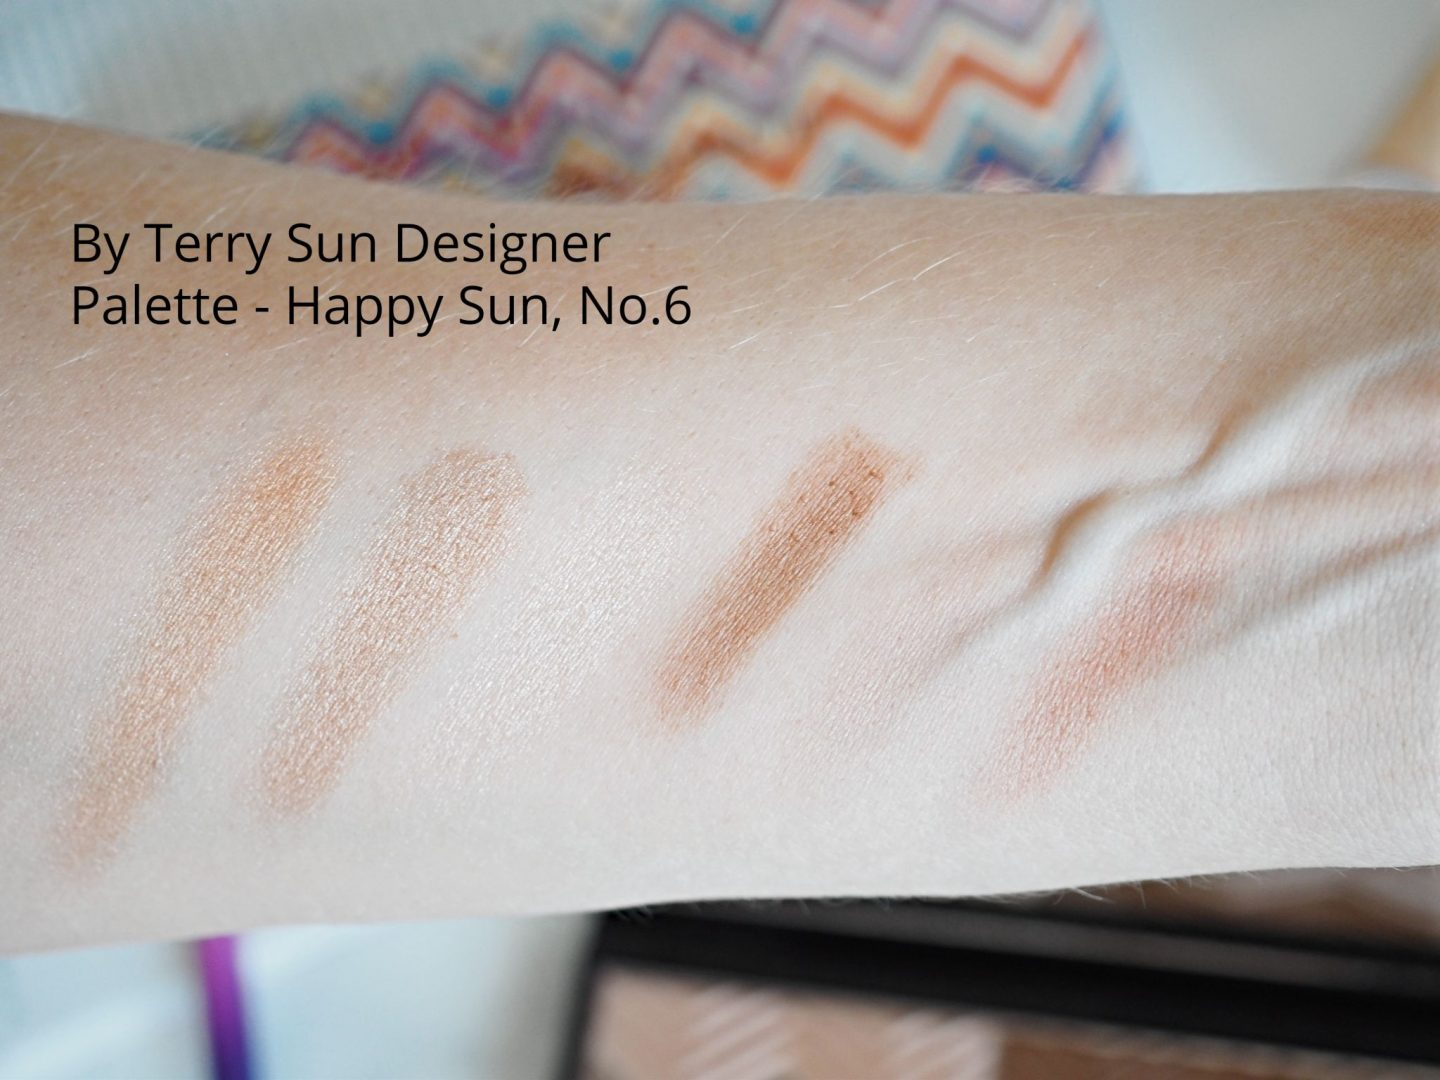 By Terry Sun Designer Palette Happy Sun swatches